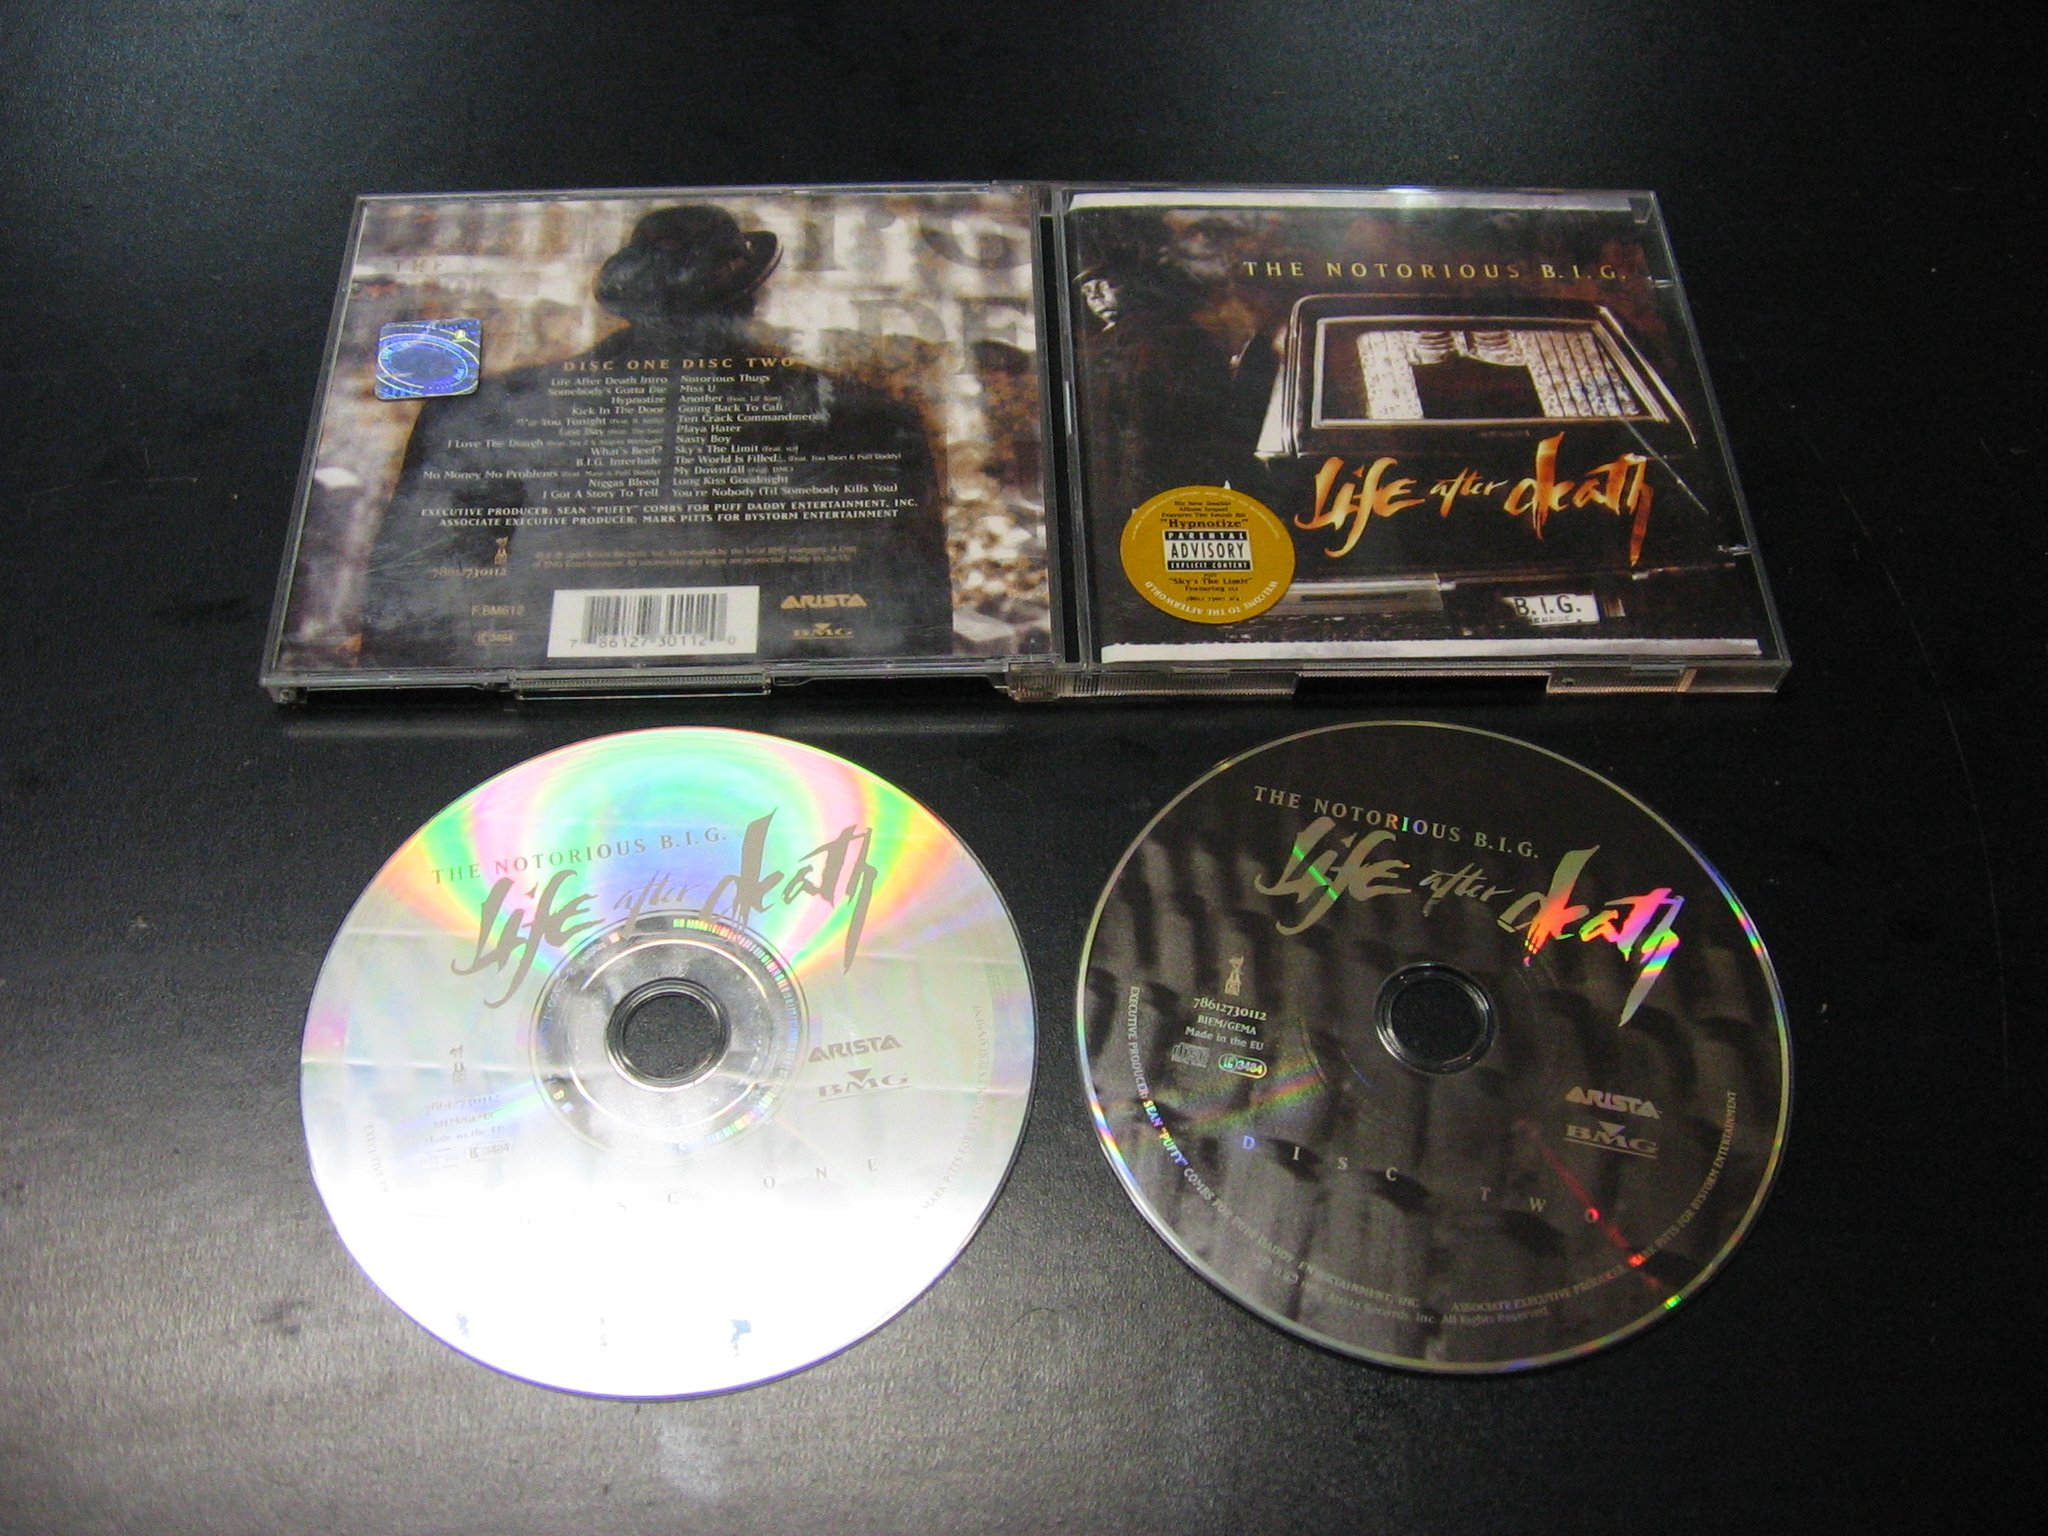 The Notorious B.I.G. - Life After Death 2CD ```````````` Opole AlleOpole.pl